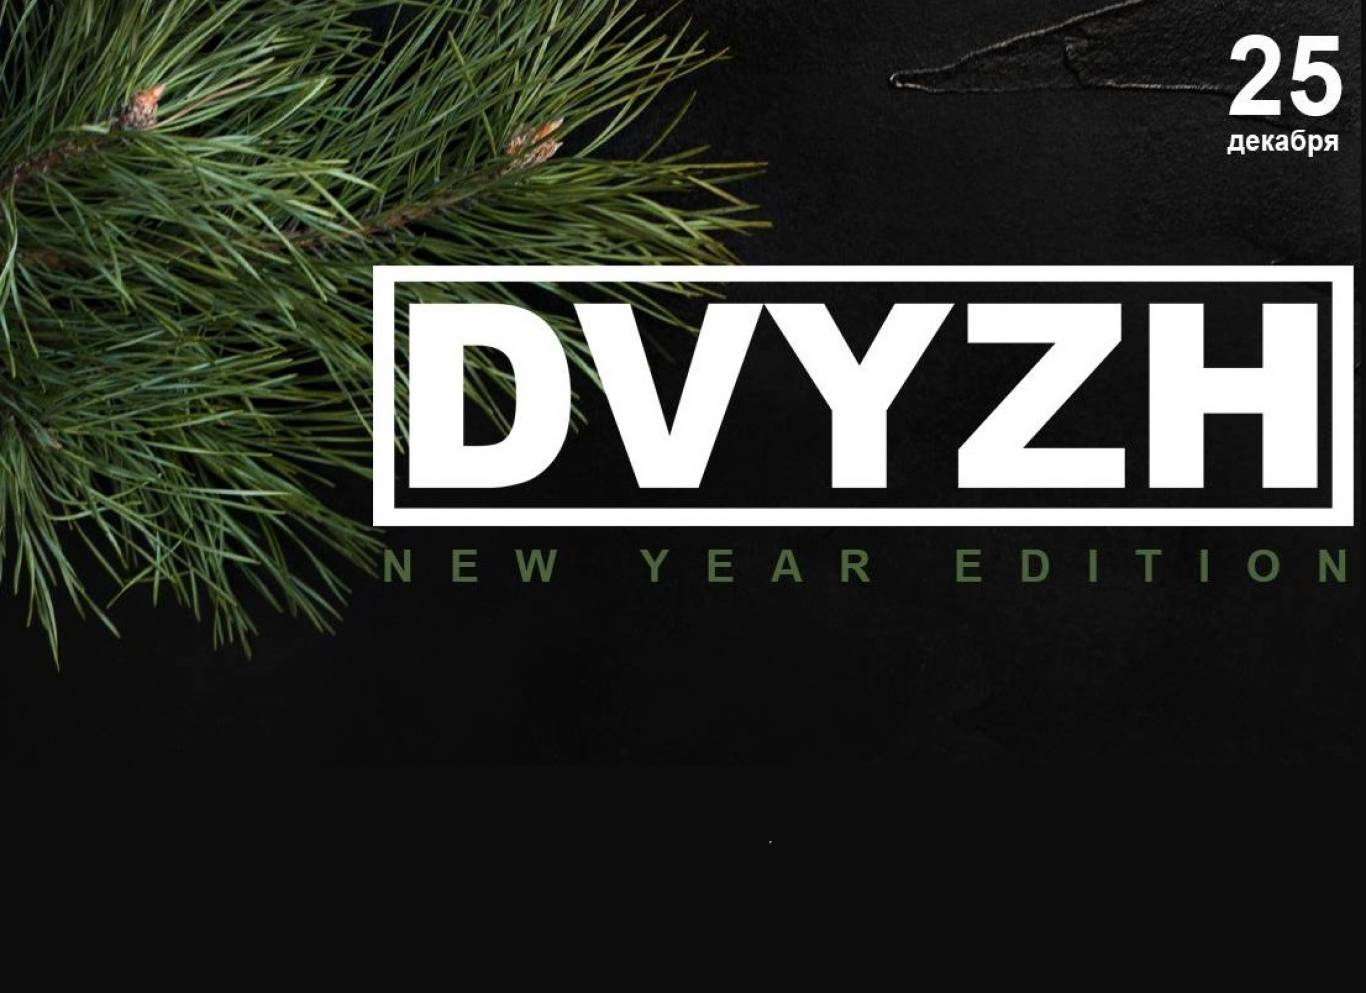 Маркет DVYZH: New Year Edition